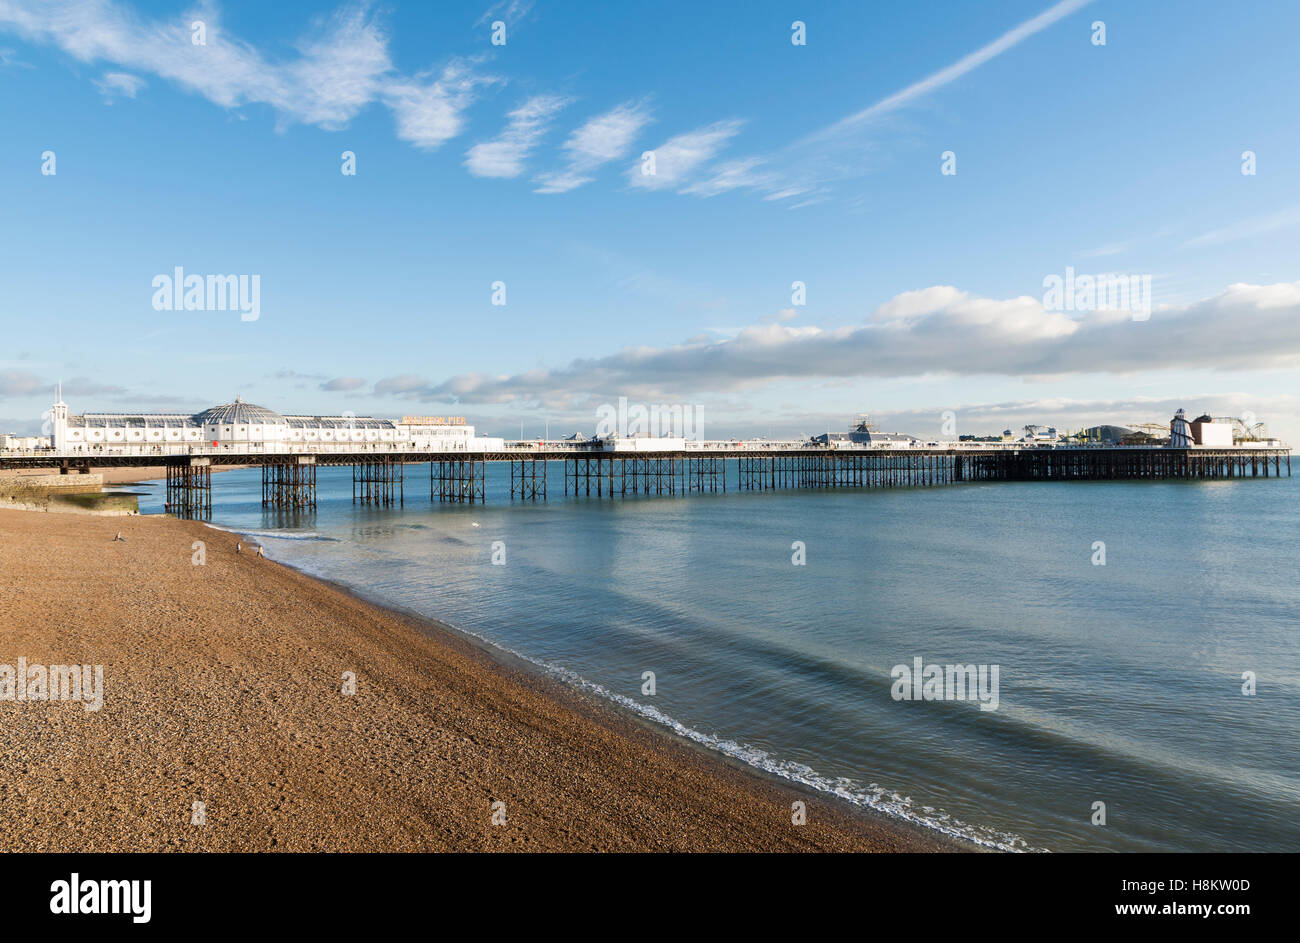 View of Brighton Pier (was Palace Pier) on Brighton Beach on a calm sunny day, Sussex, UK - Stock Image